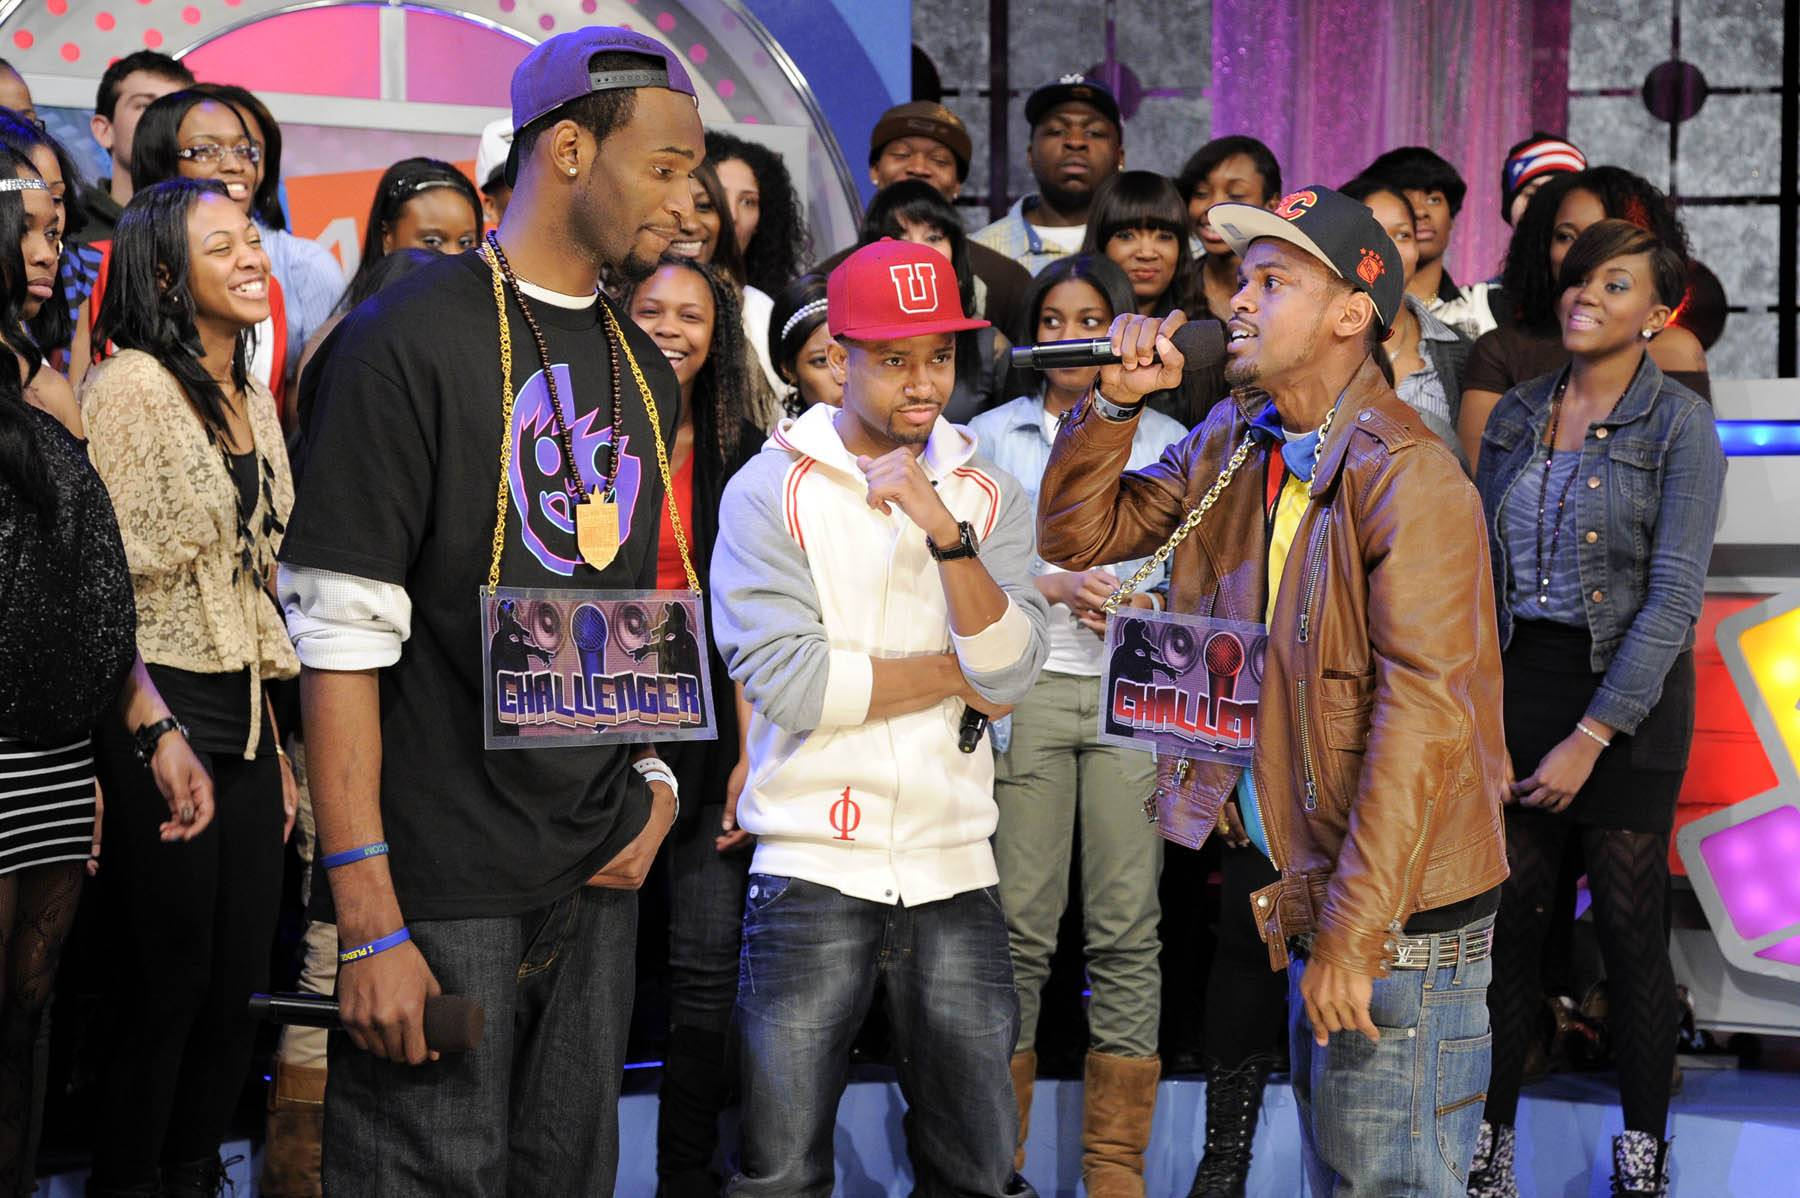 It's Time - Freestyle Friday challenger J Dose battles at 106 & Park, January 27, 2012. (Photo: John Ricard / BET)